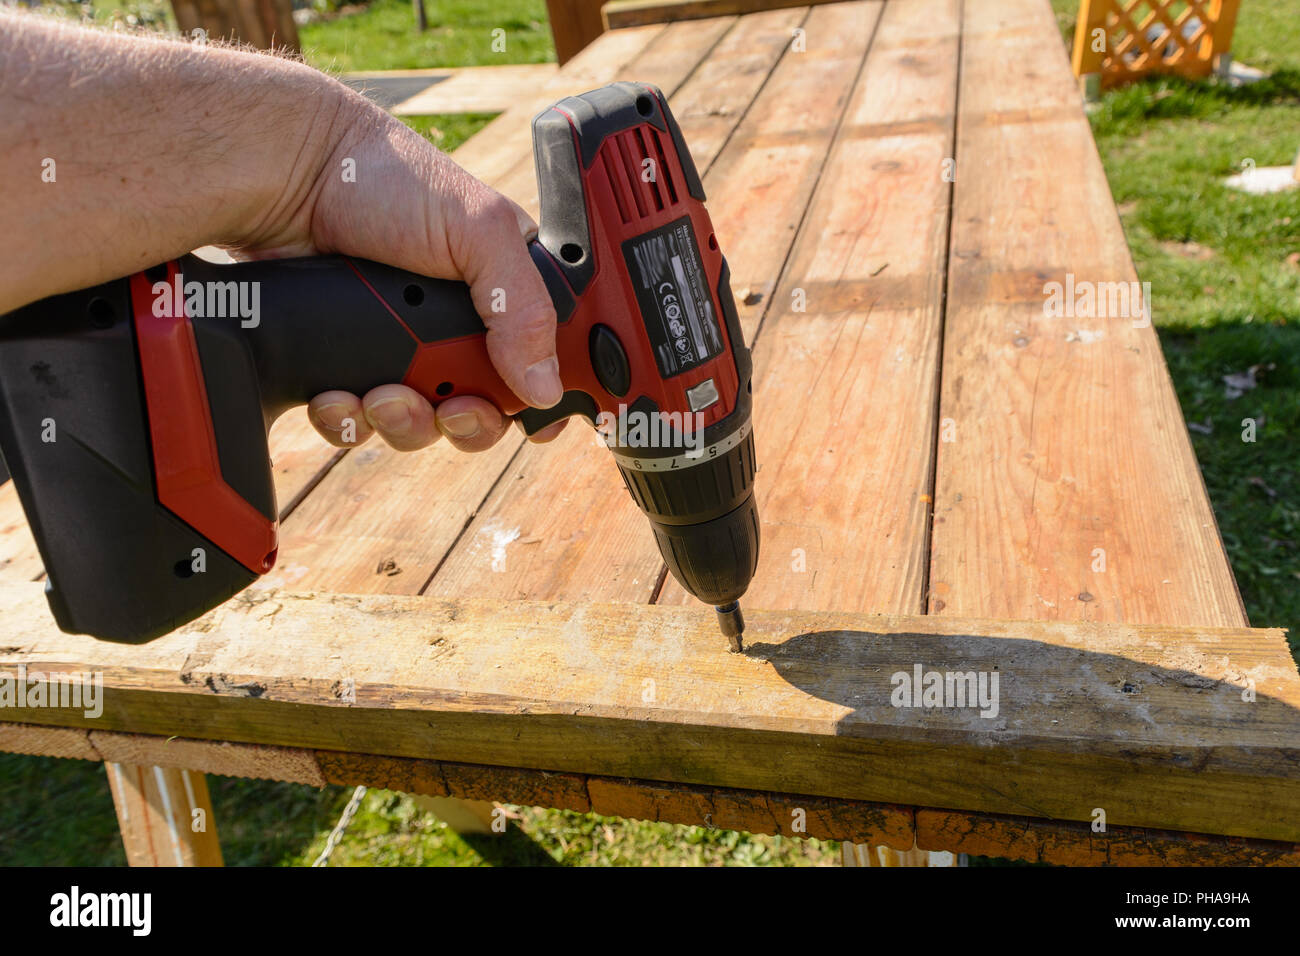 Handyman screwed with cordless screwdriver boards - close-up - Stock Image